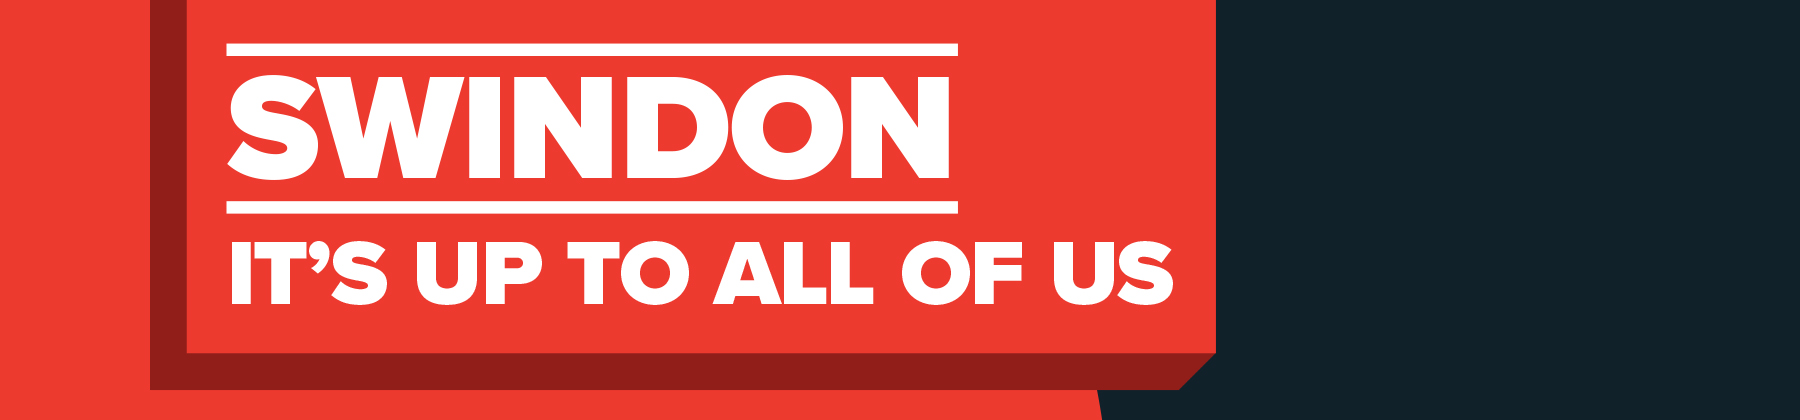 Swindon it is up to all of us - web banner